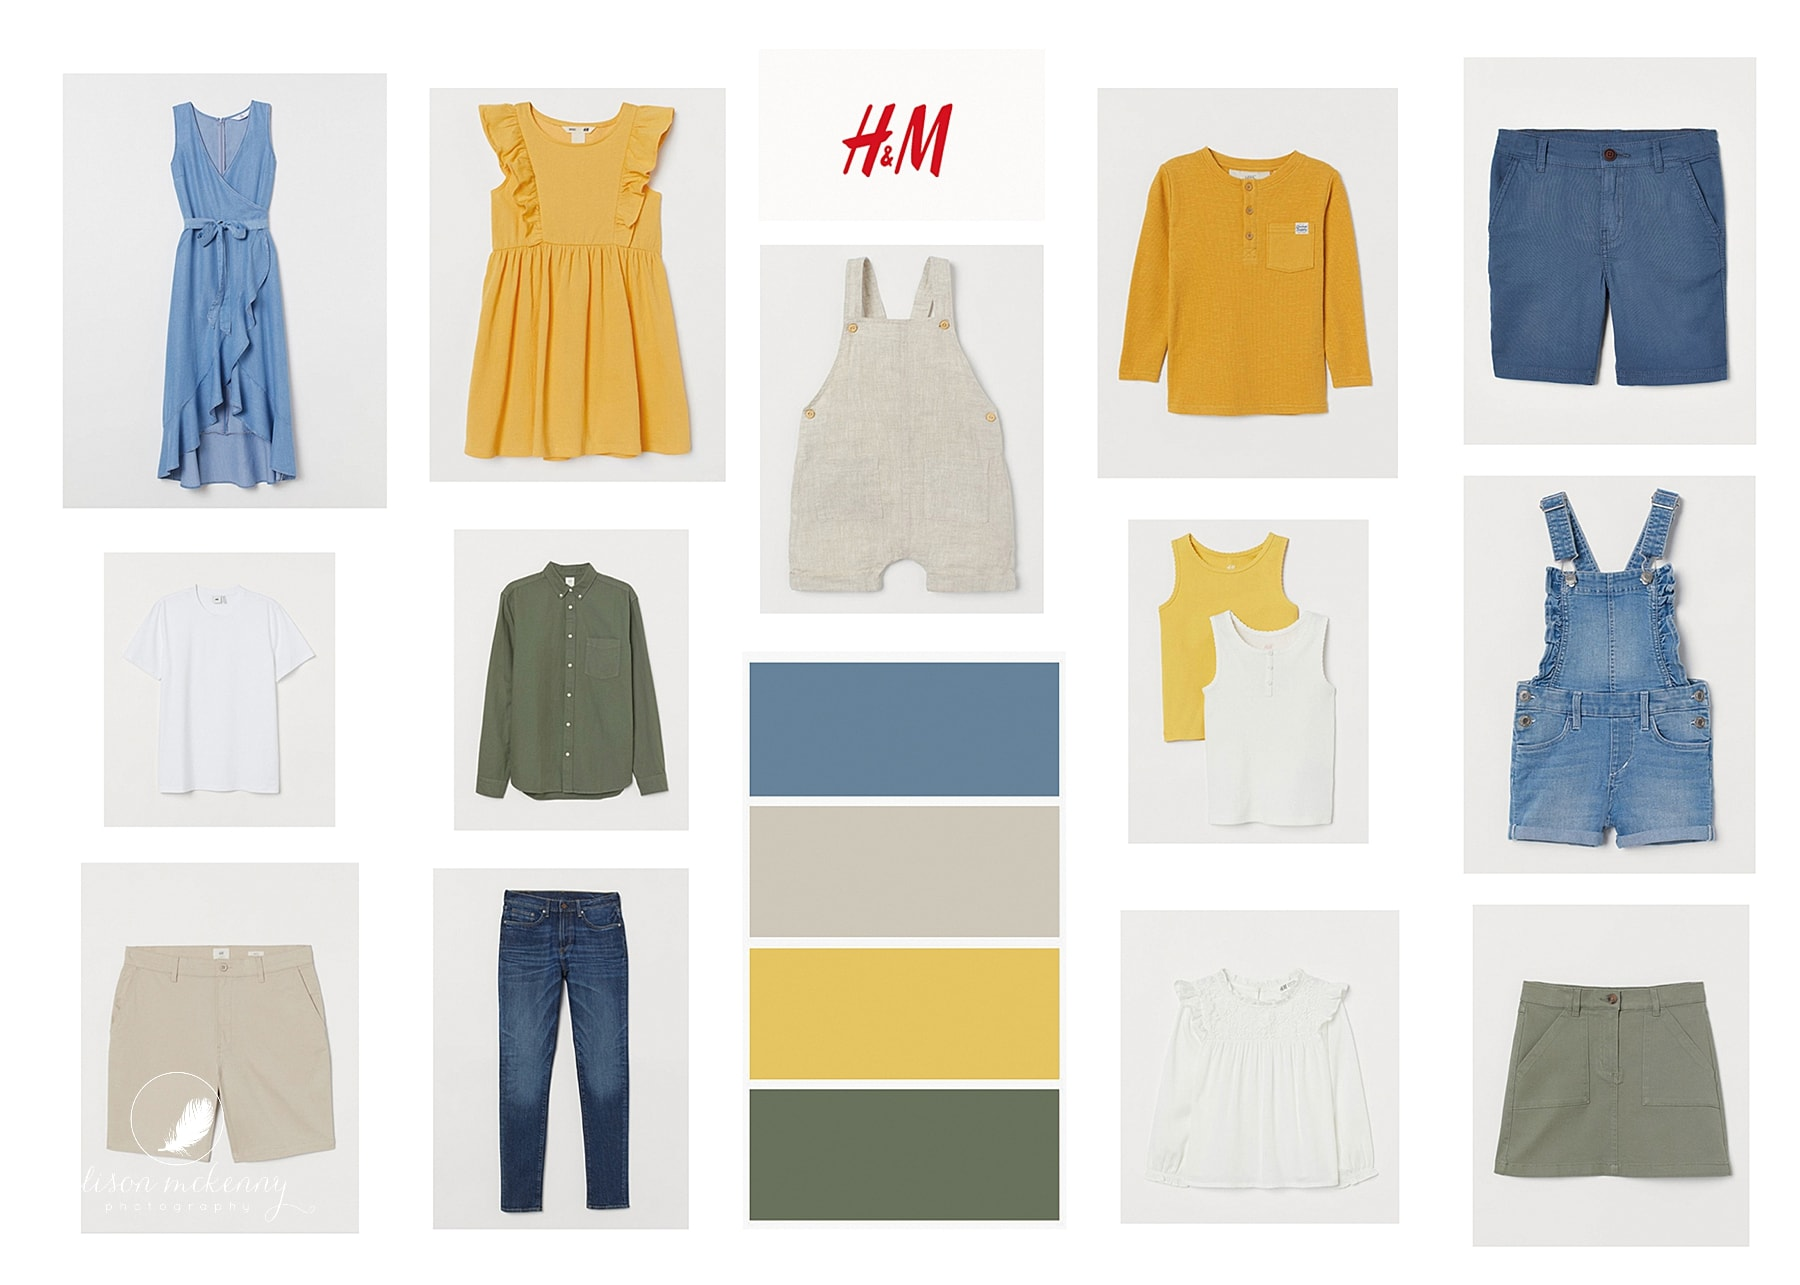 Family clothes in Yellow, blue, green and beige for a photoshoot in suffolk